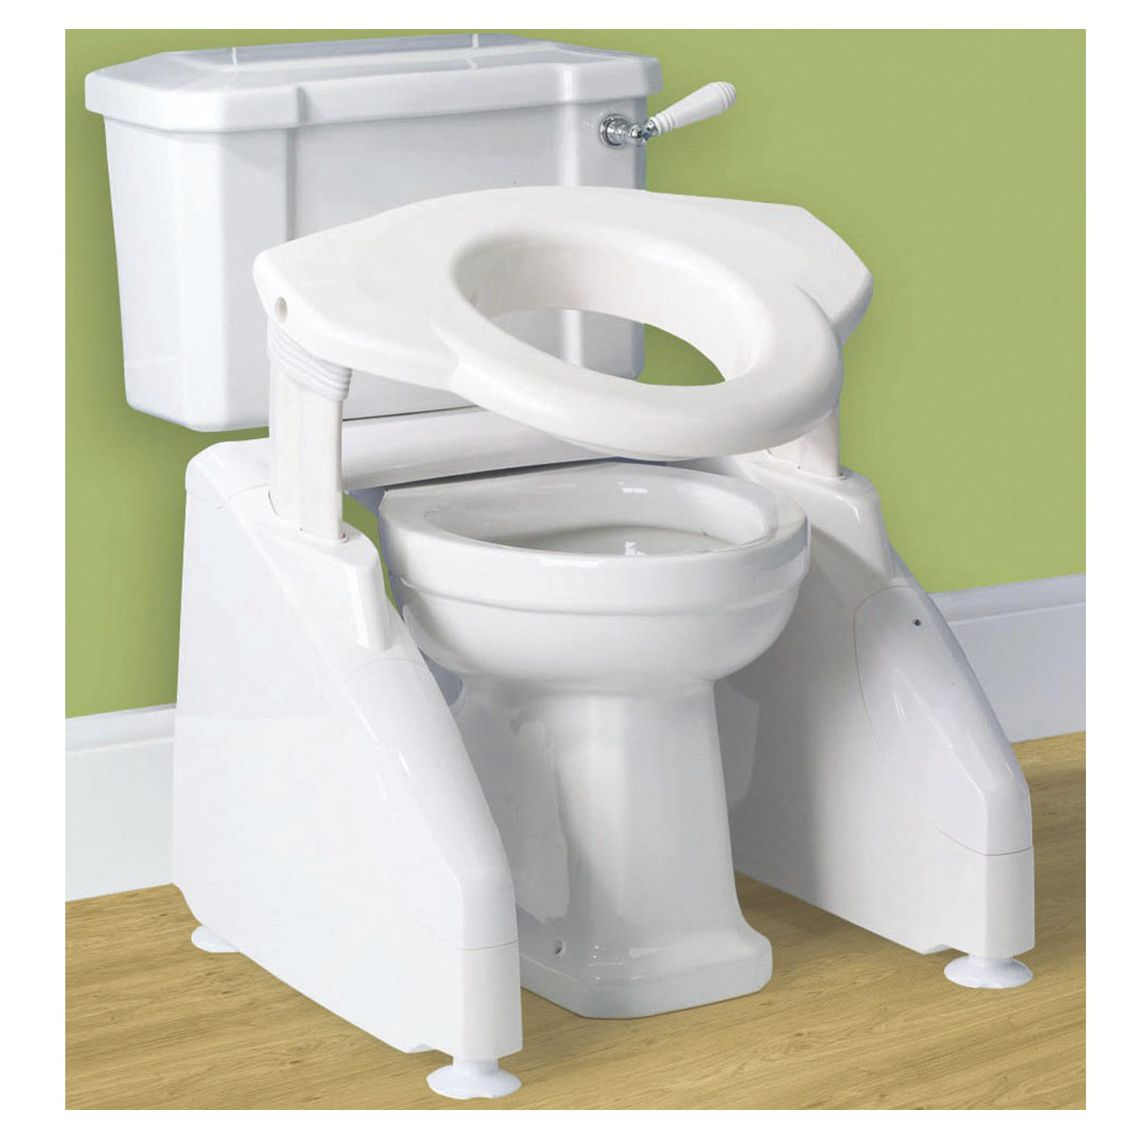 Drive Raised Toilet Seat With Arms.Electric Raised Toilet Seat Solo Drive Devilbiss Europe Videos